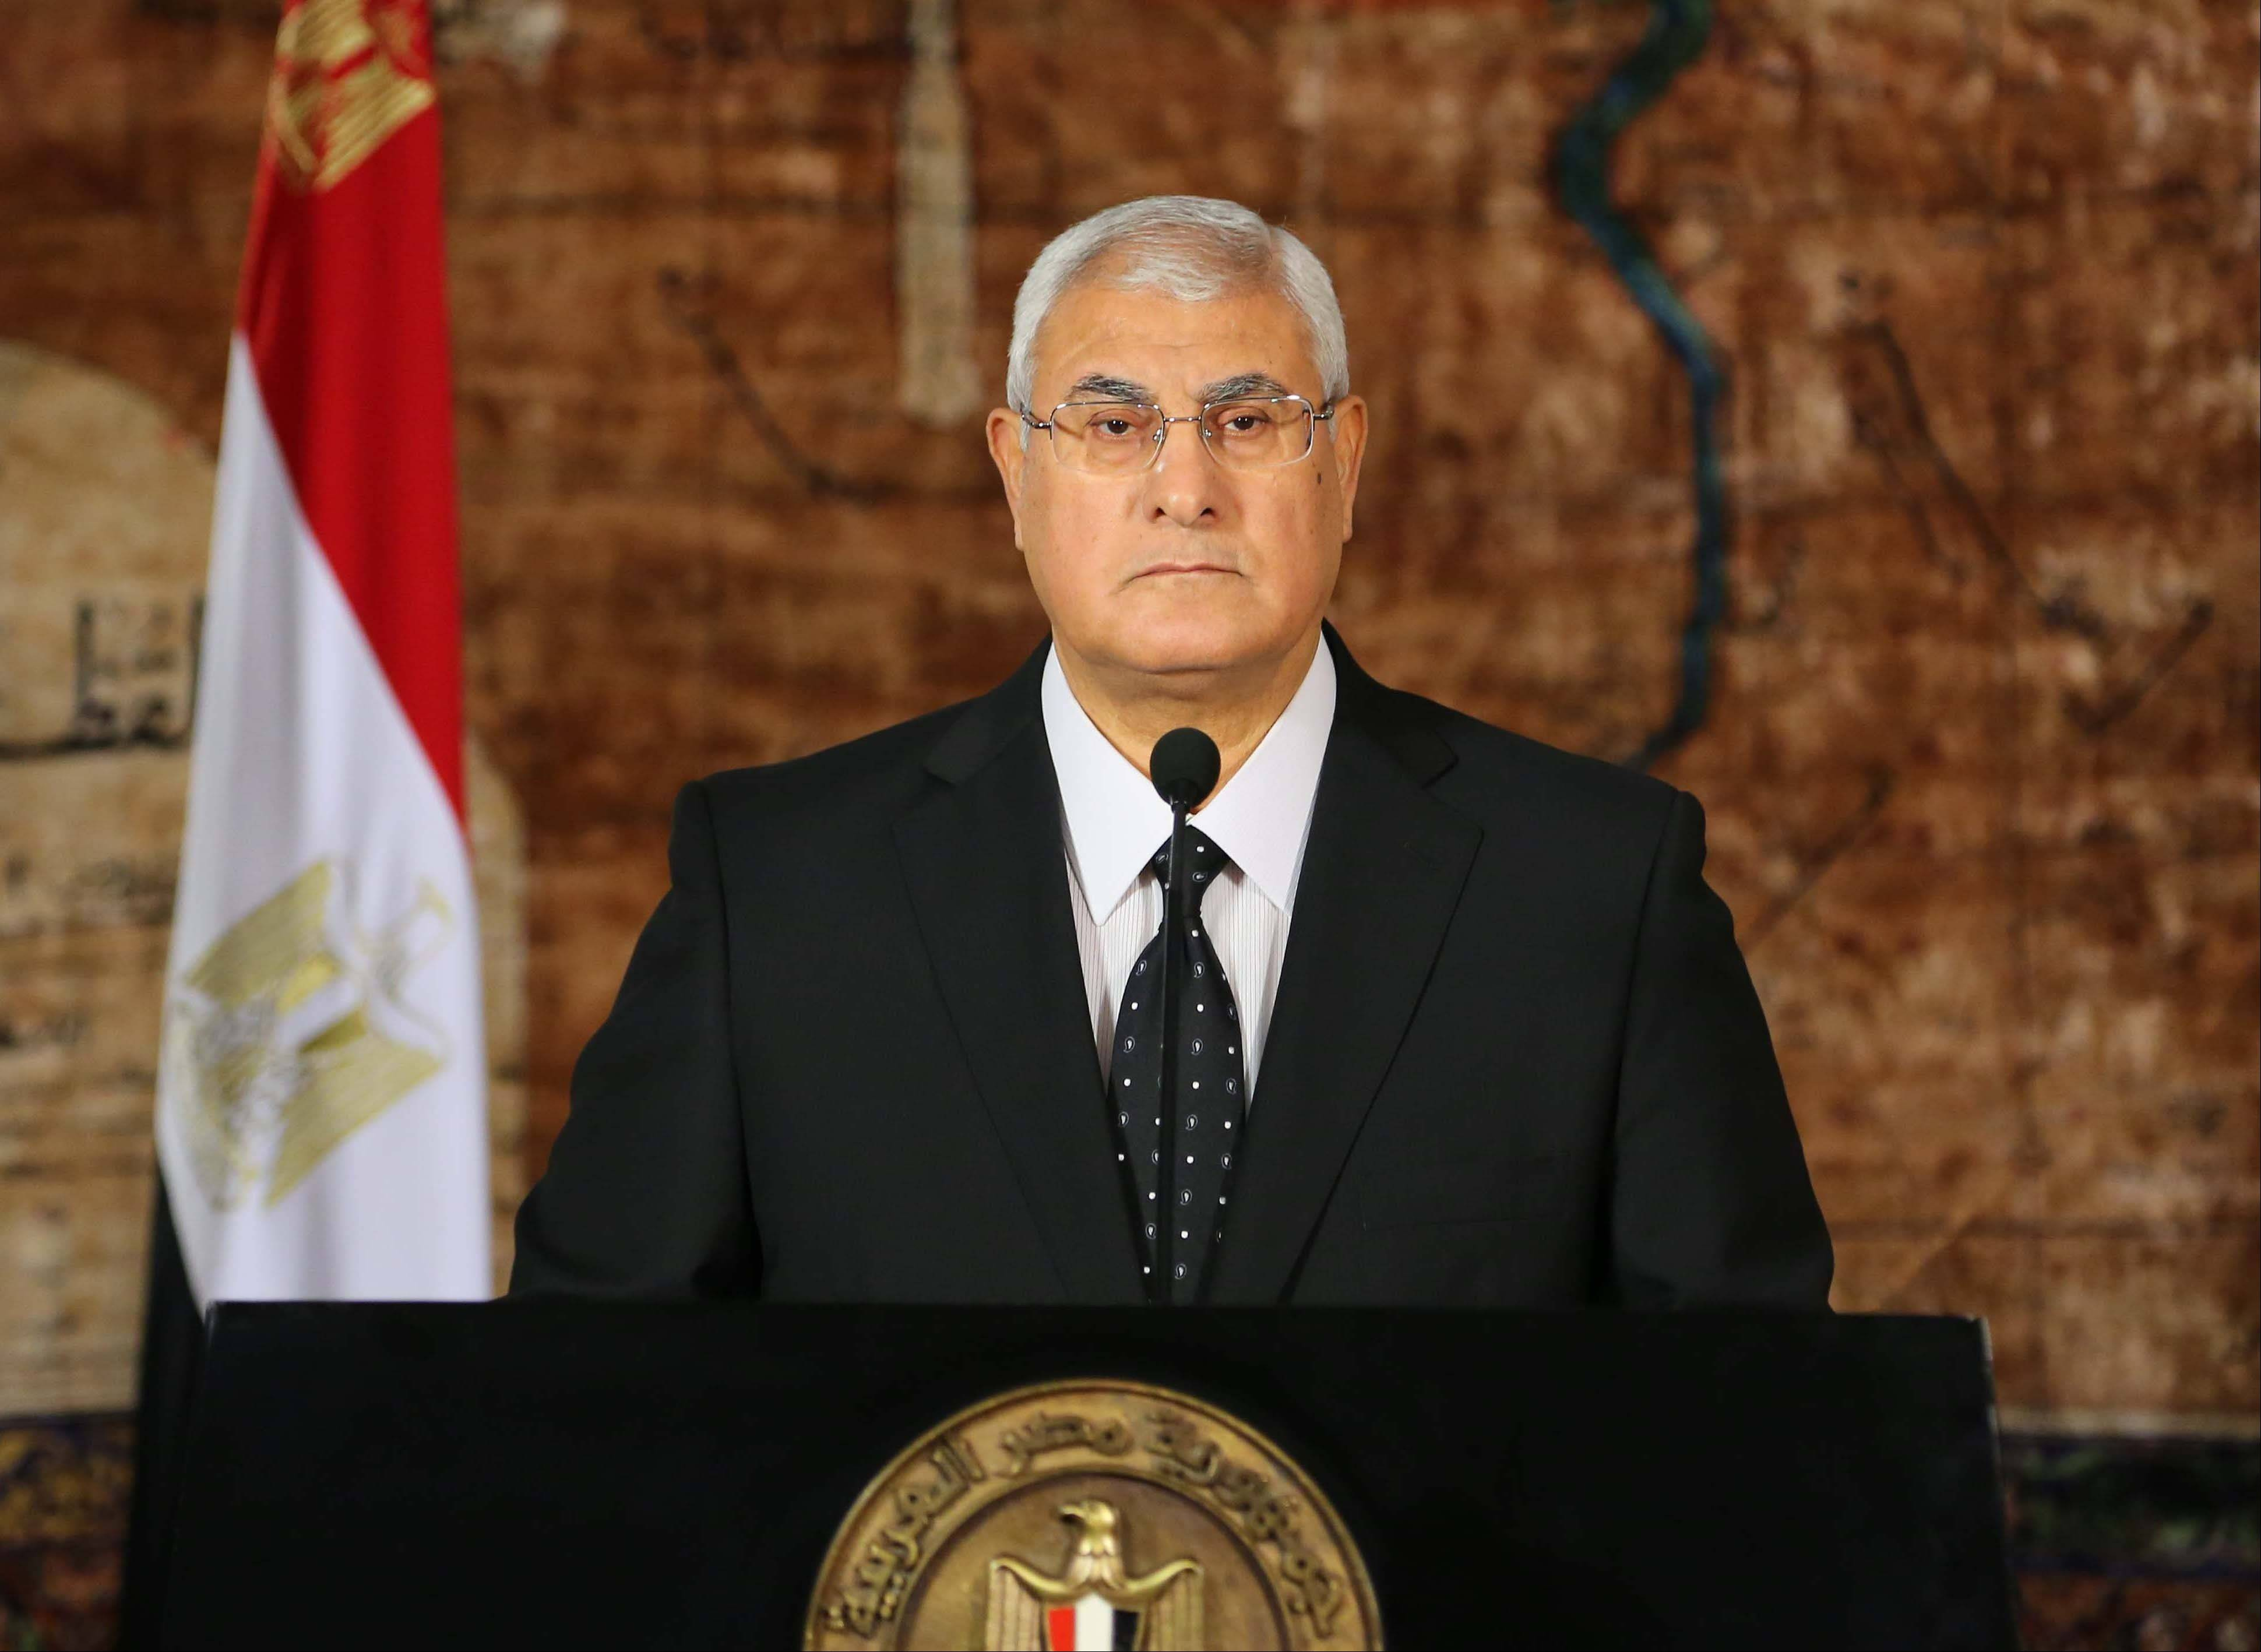 Egypt's interim President Adly Mansour, seen here in a photo from July, on Tuesday defended the military's ouster of President Mohammed Morsi, saying he failed to deliver on campaign promises and was forced out by the will of people who elected him and not by a coup.